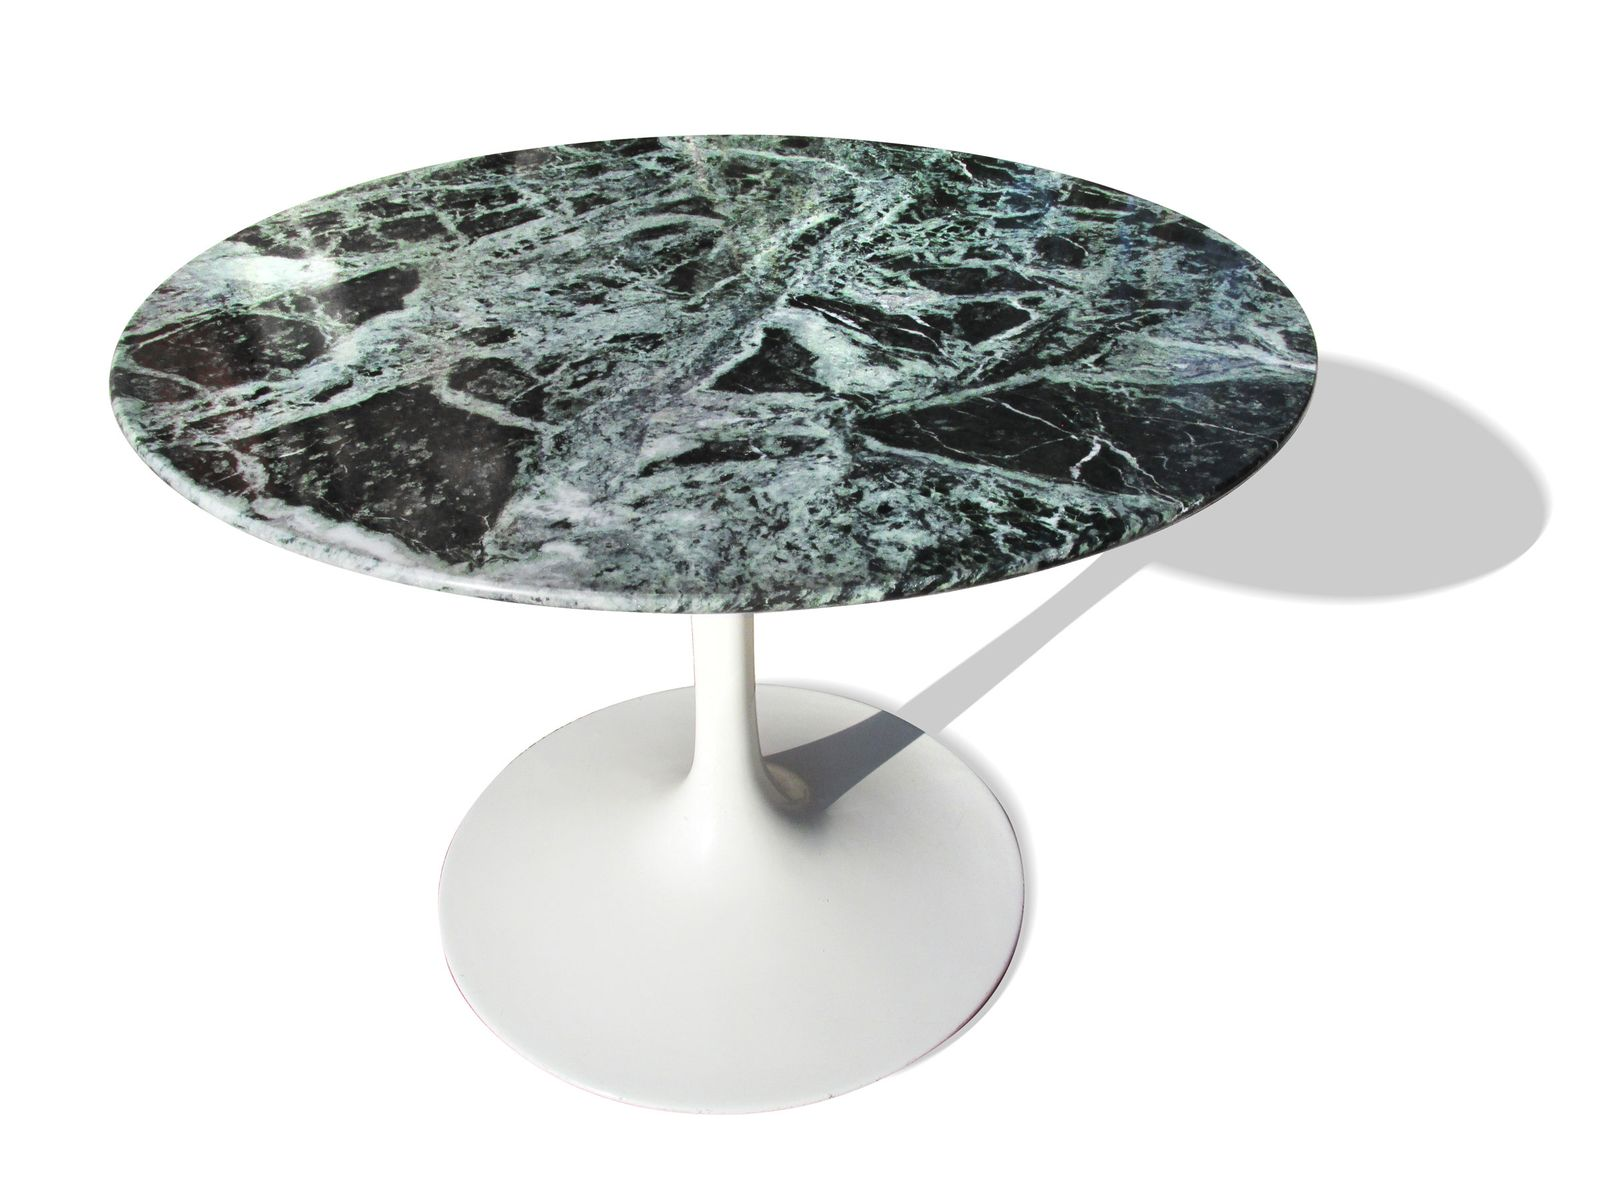 Italian Marble Coffee Table French Green Alpine Italian Marble Coffee Table By Eero Saarinen